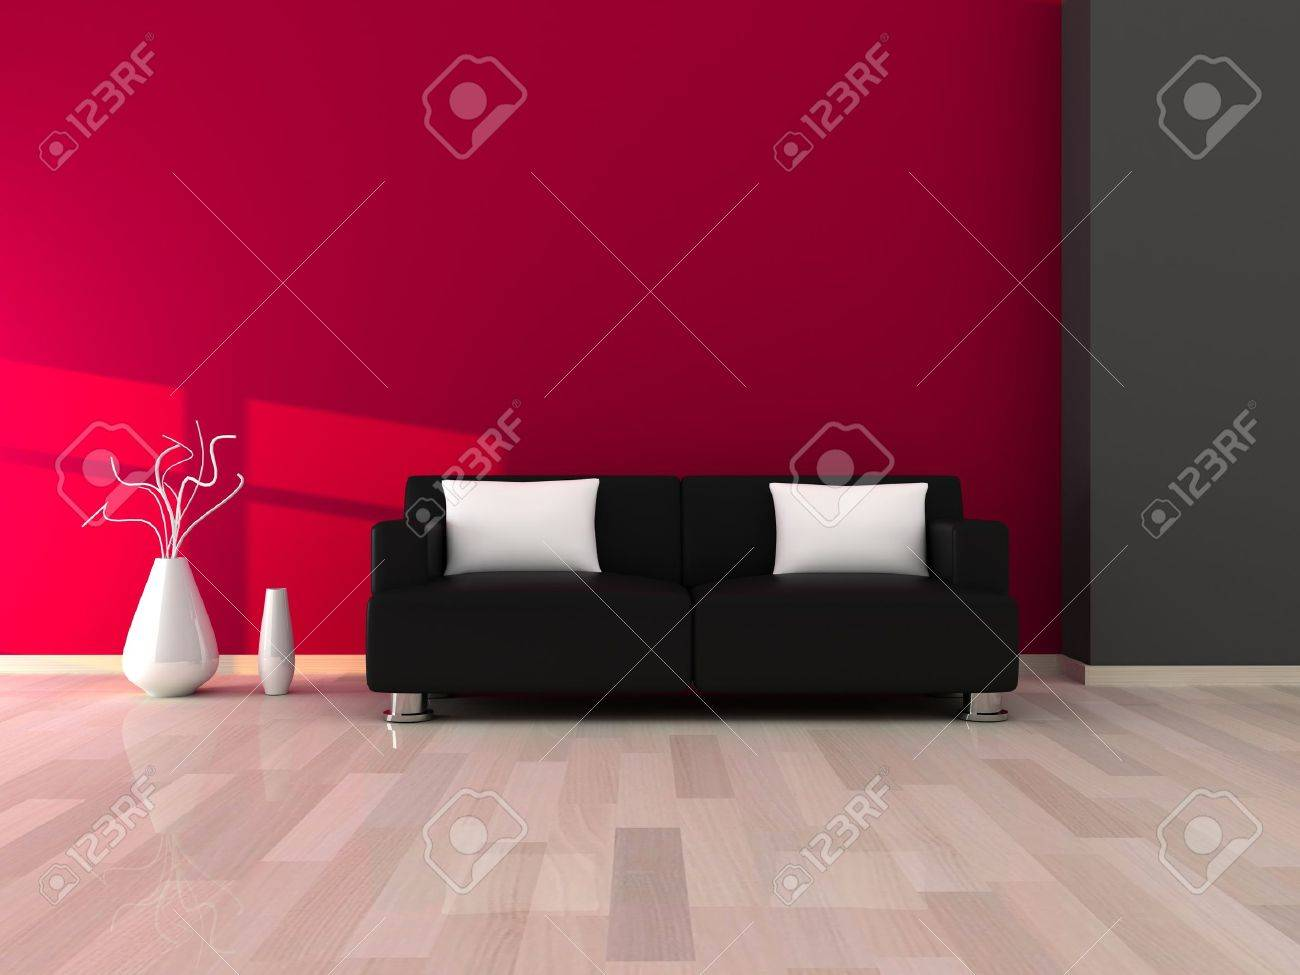 interior of the modern room grey and pink wall and black sofa stock rh 123rf com black sofa pink cushions joke